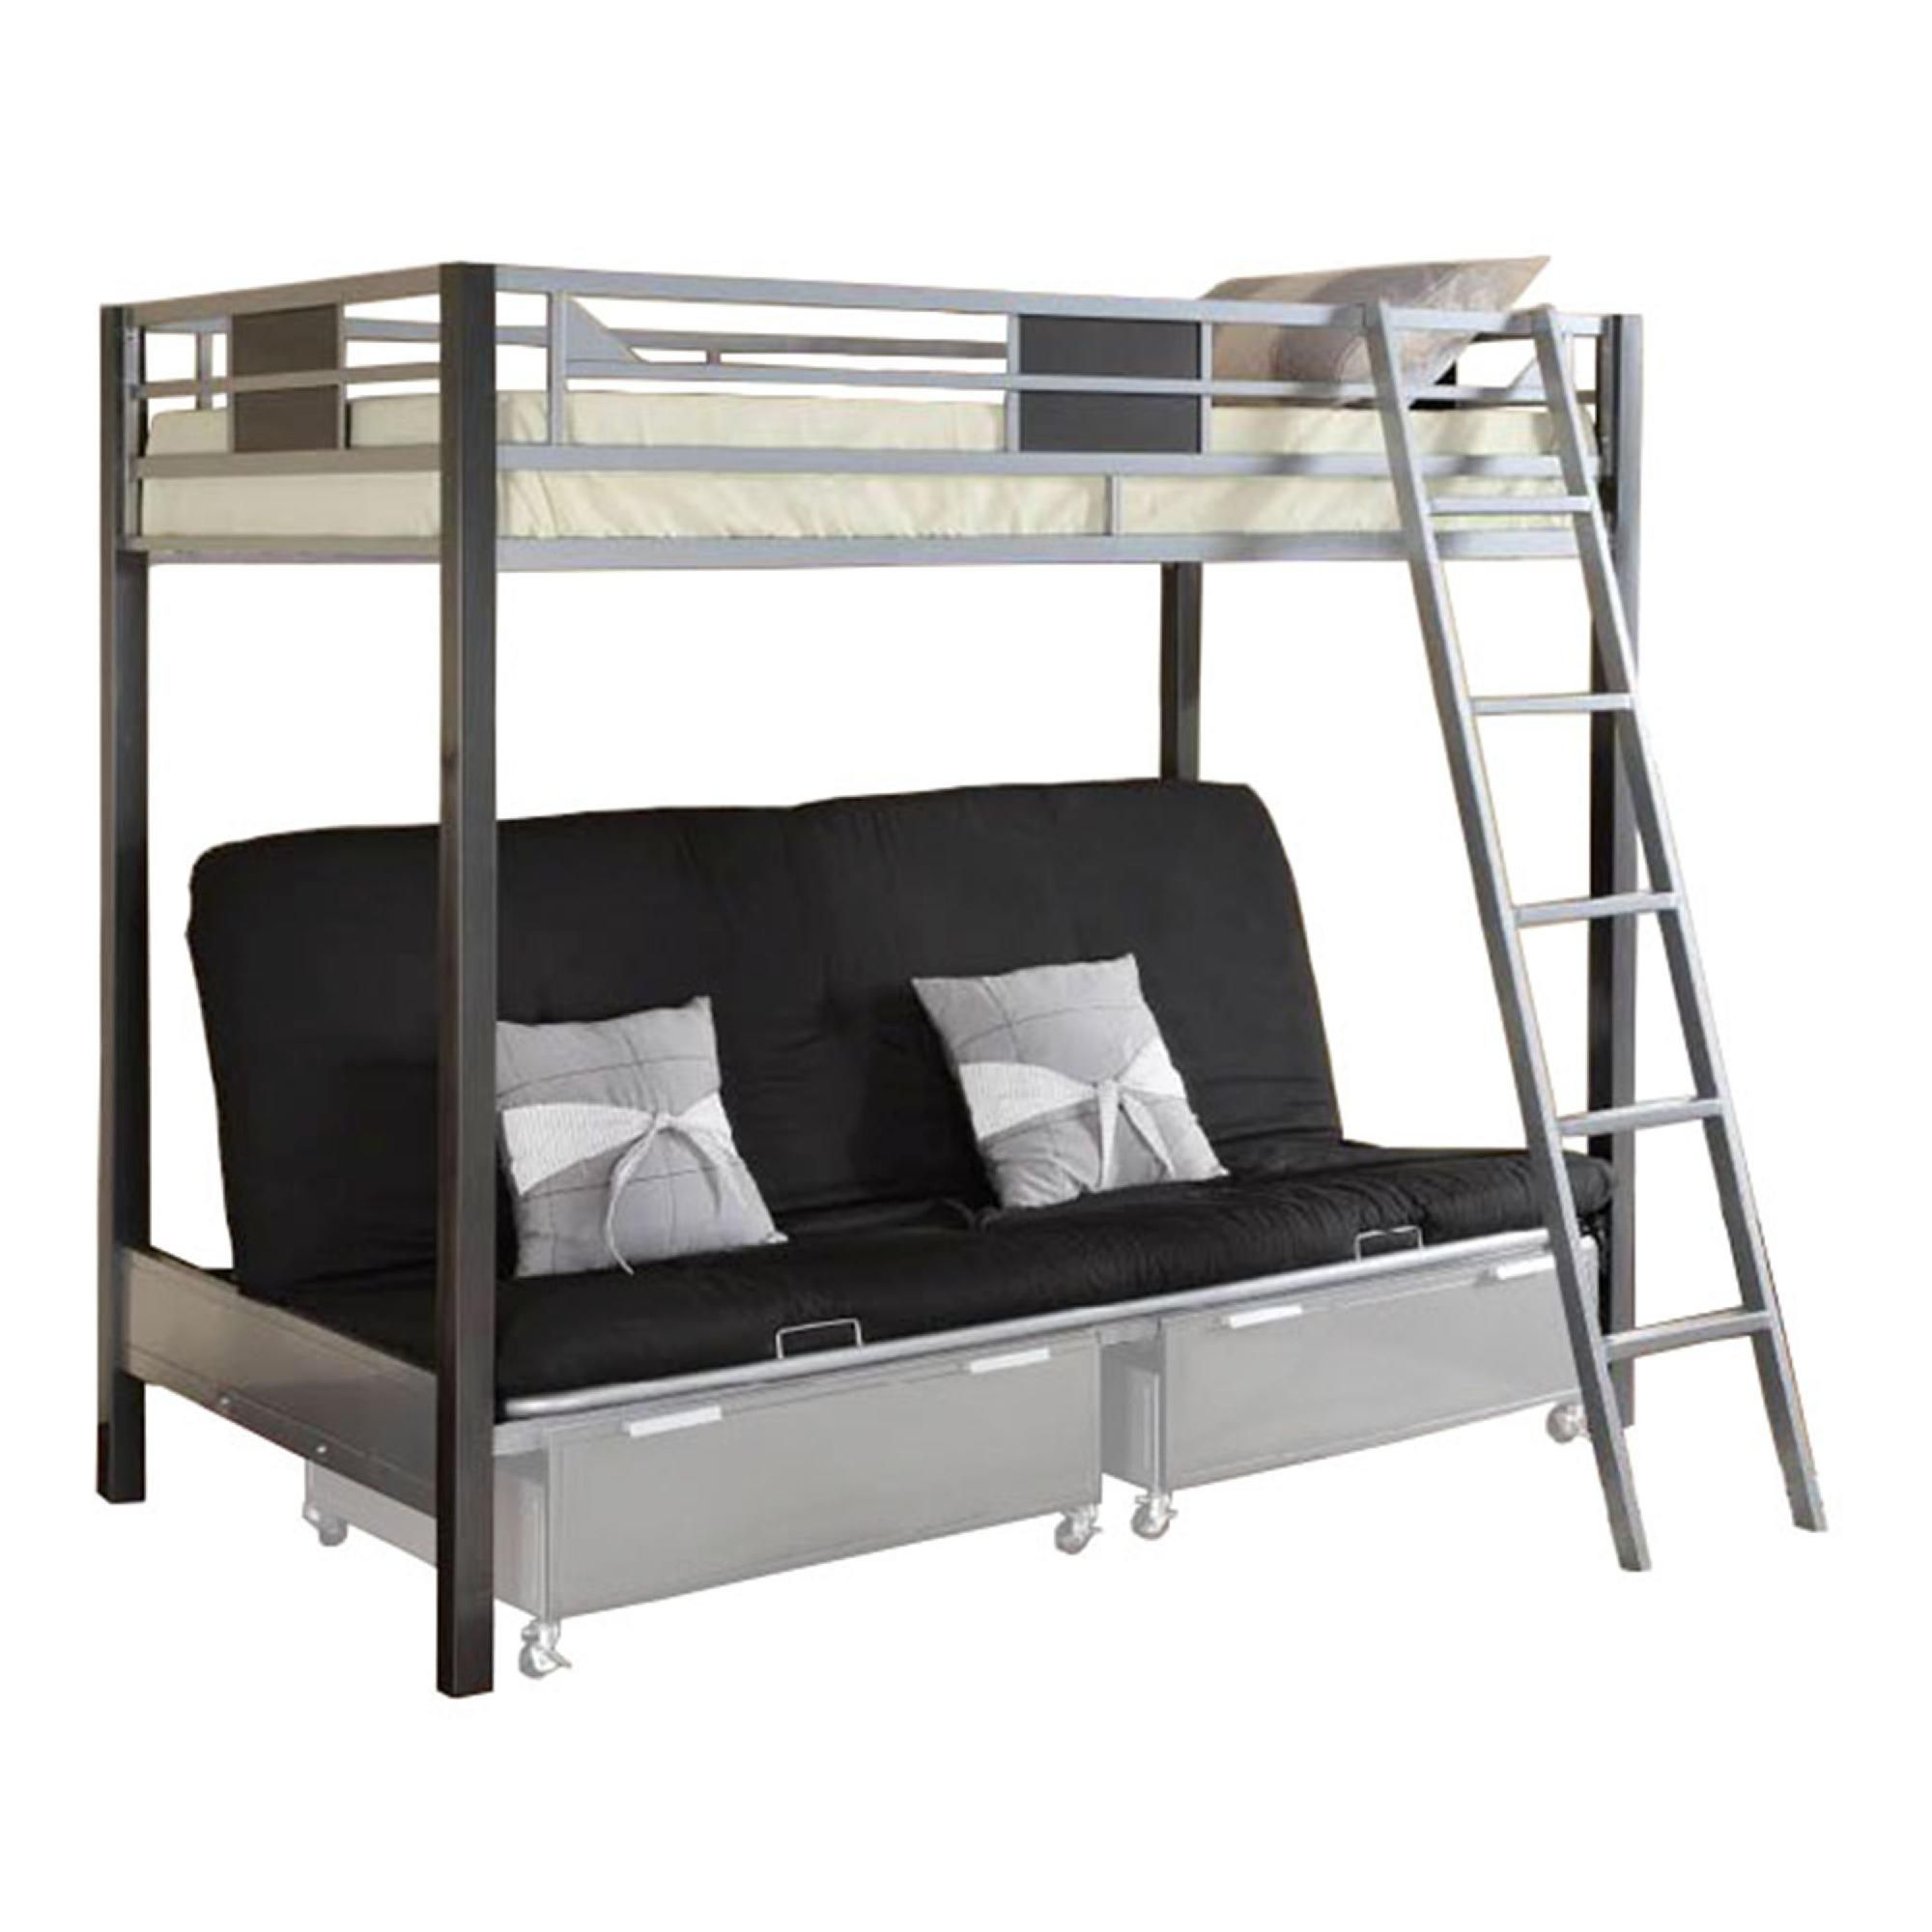 Metal loft bed ideas  also good for a tiny home  Tiny Homes  Pinterest  Spin